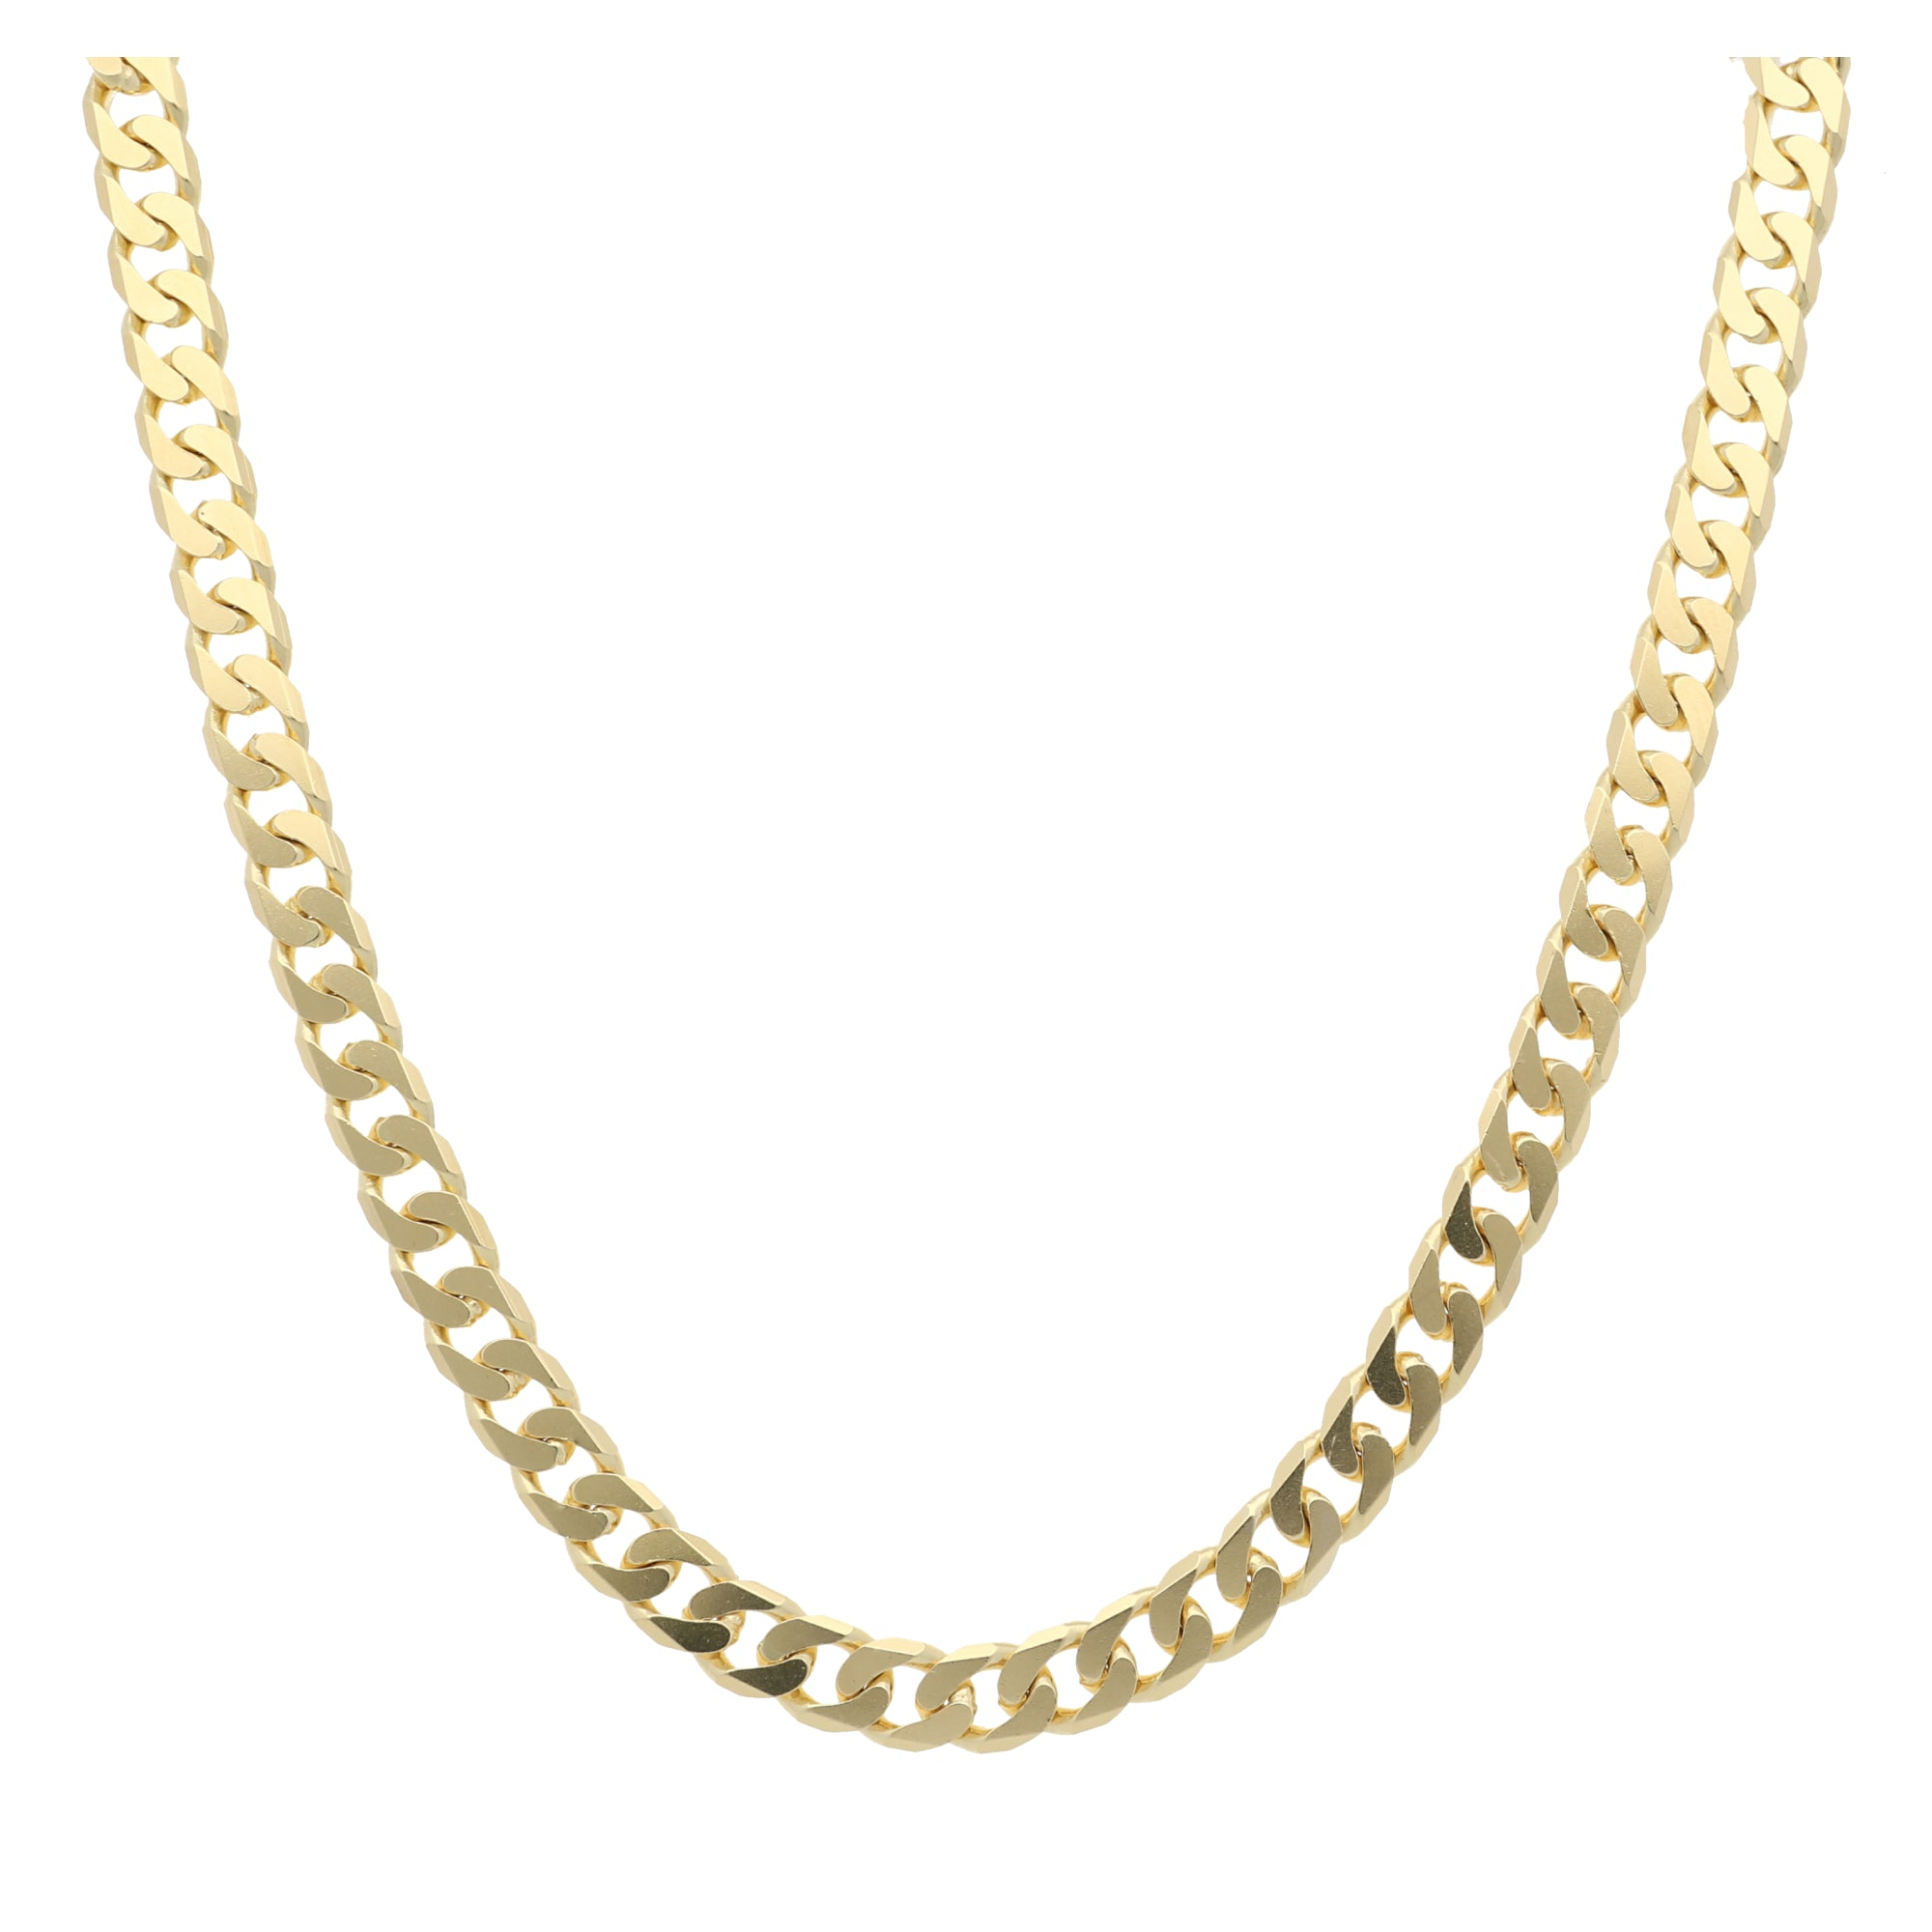 18ct Yellow Gold Mens Curb Chain (22